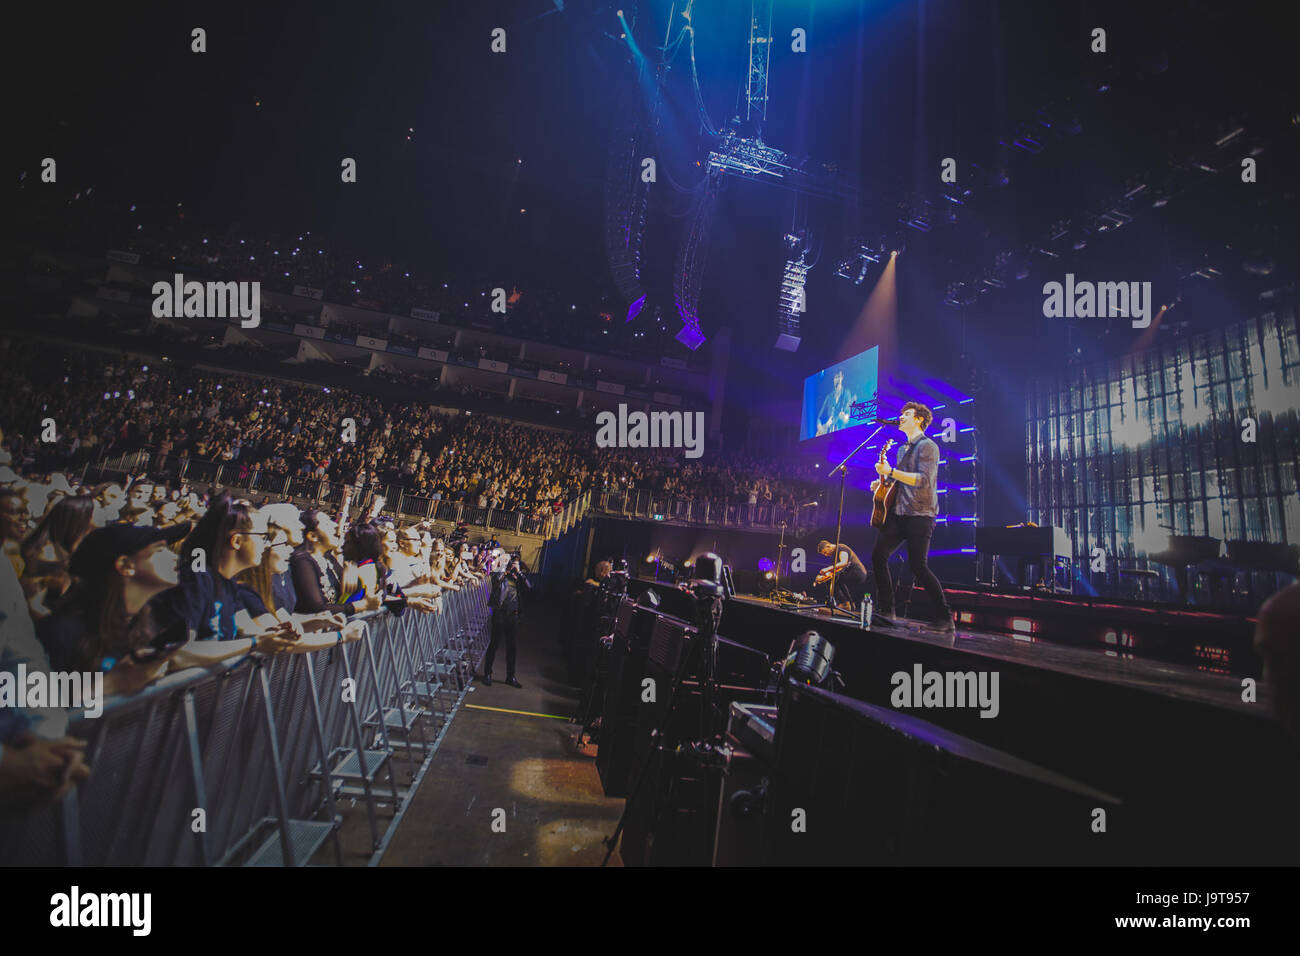 London, UK. 2nd June, 2017. Canadian singer and songwriter, Shawn Mendes, performs at the London O2 Arena on the - Stock Image